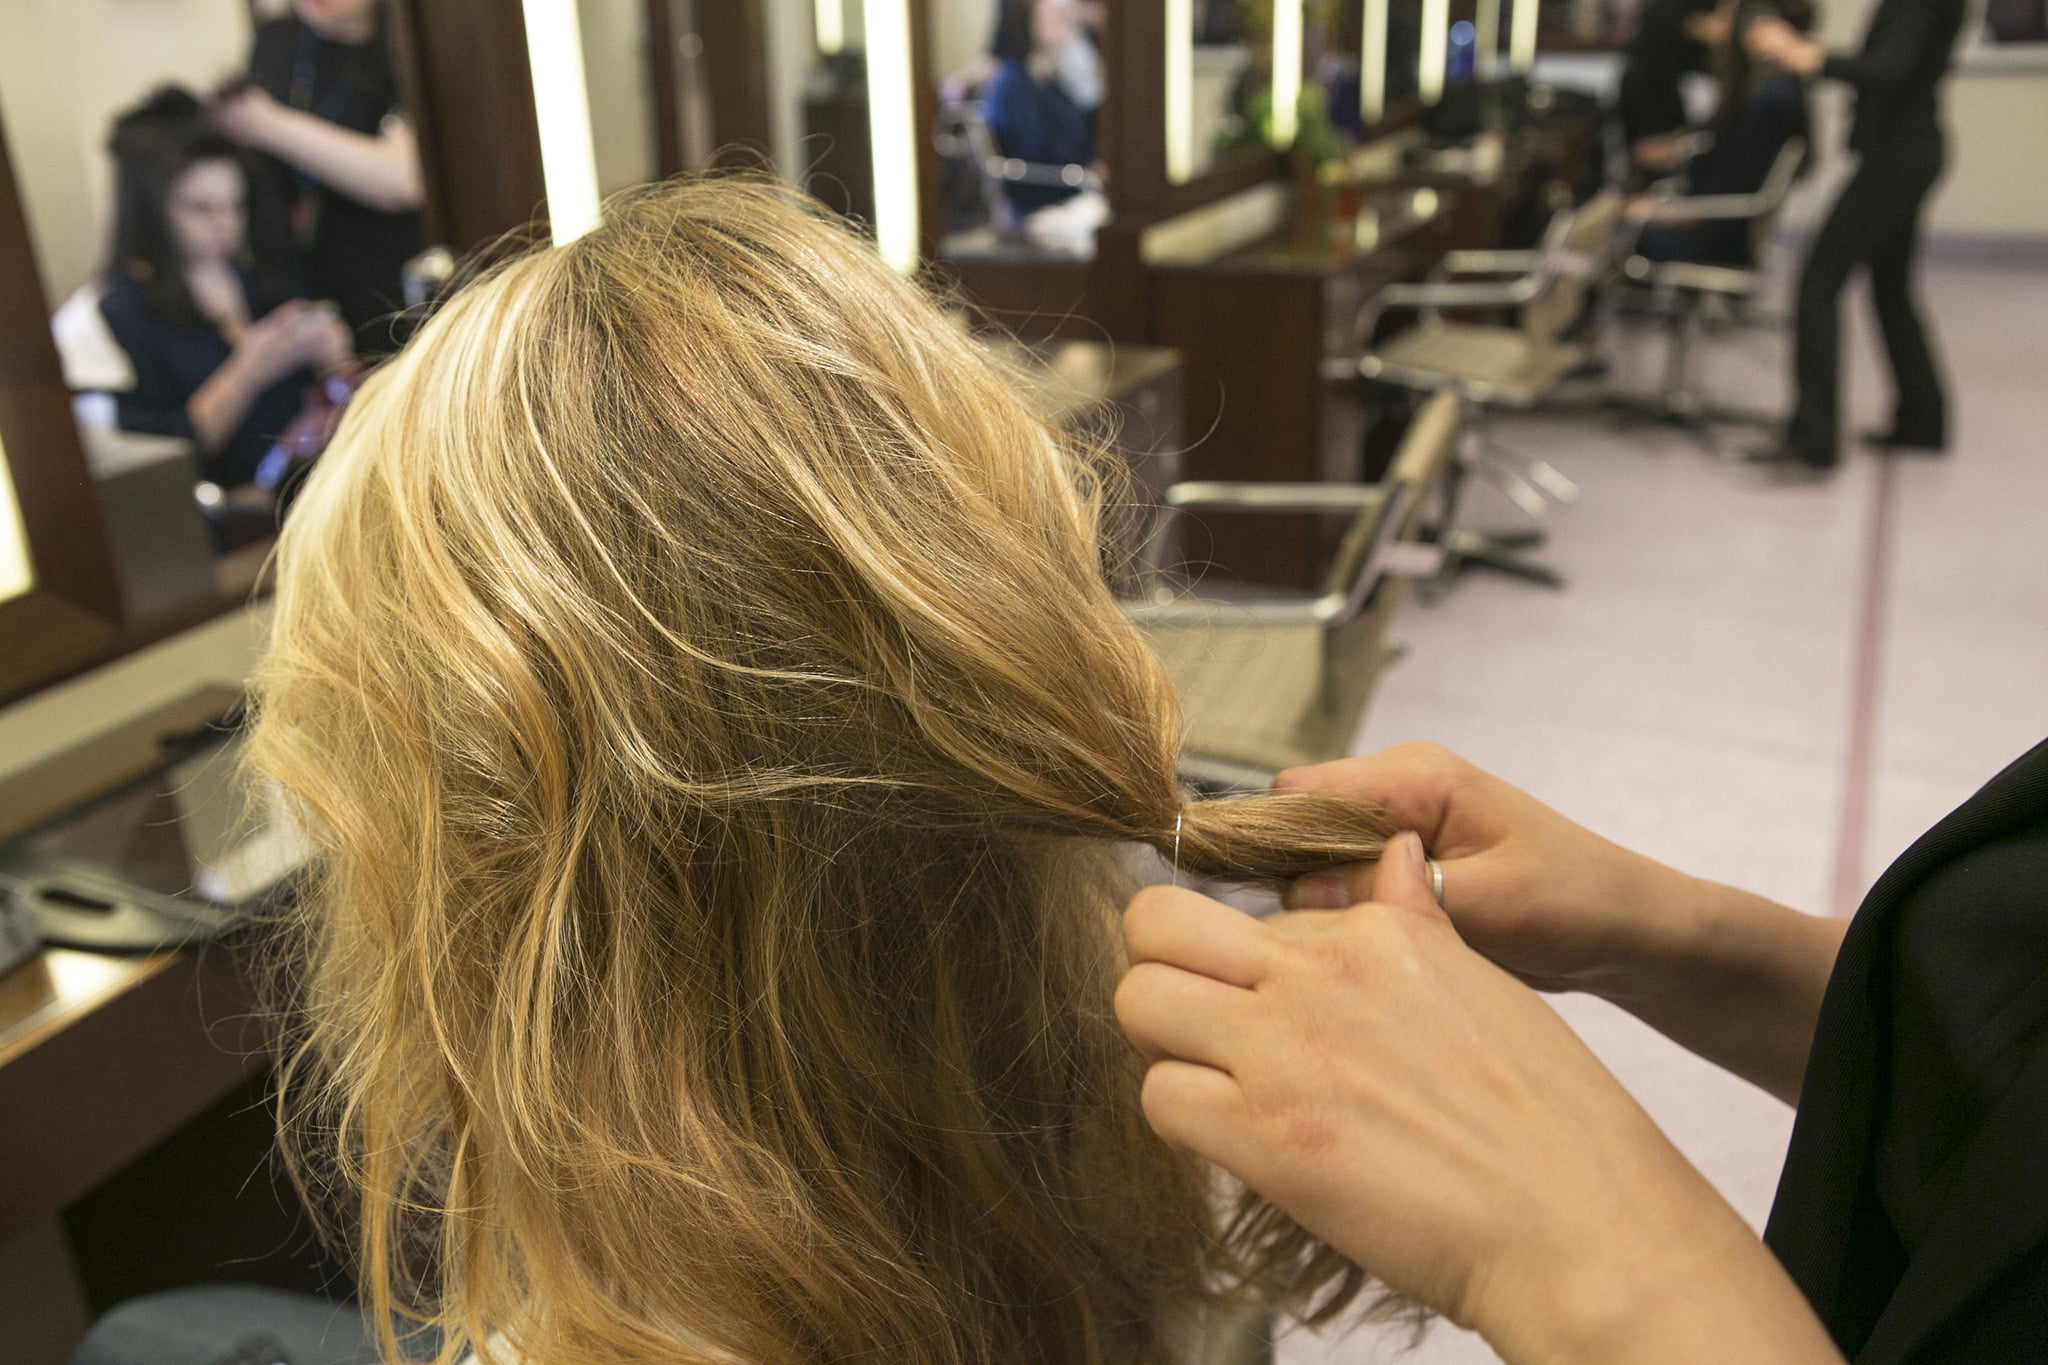 After you've teased your hair, part in the center and smooth back the middle section of hair at the crown into a loose half ponytail that's secured around the nape of the neck.